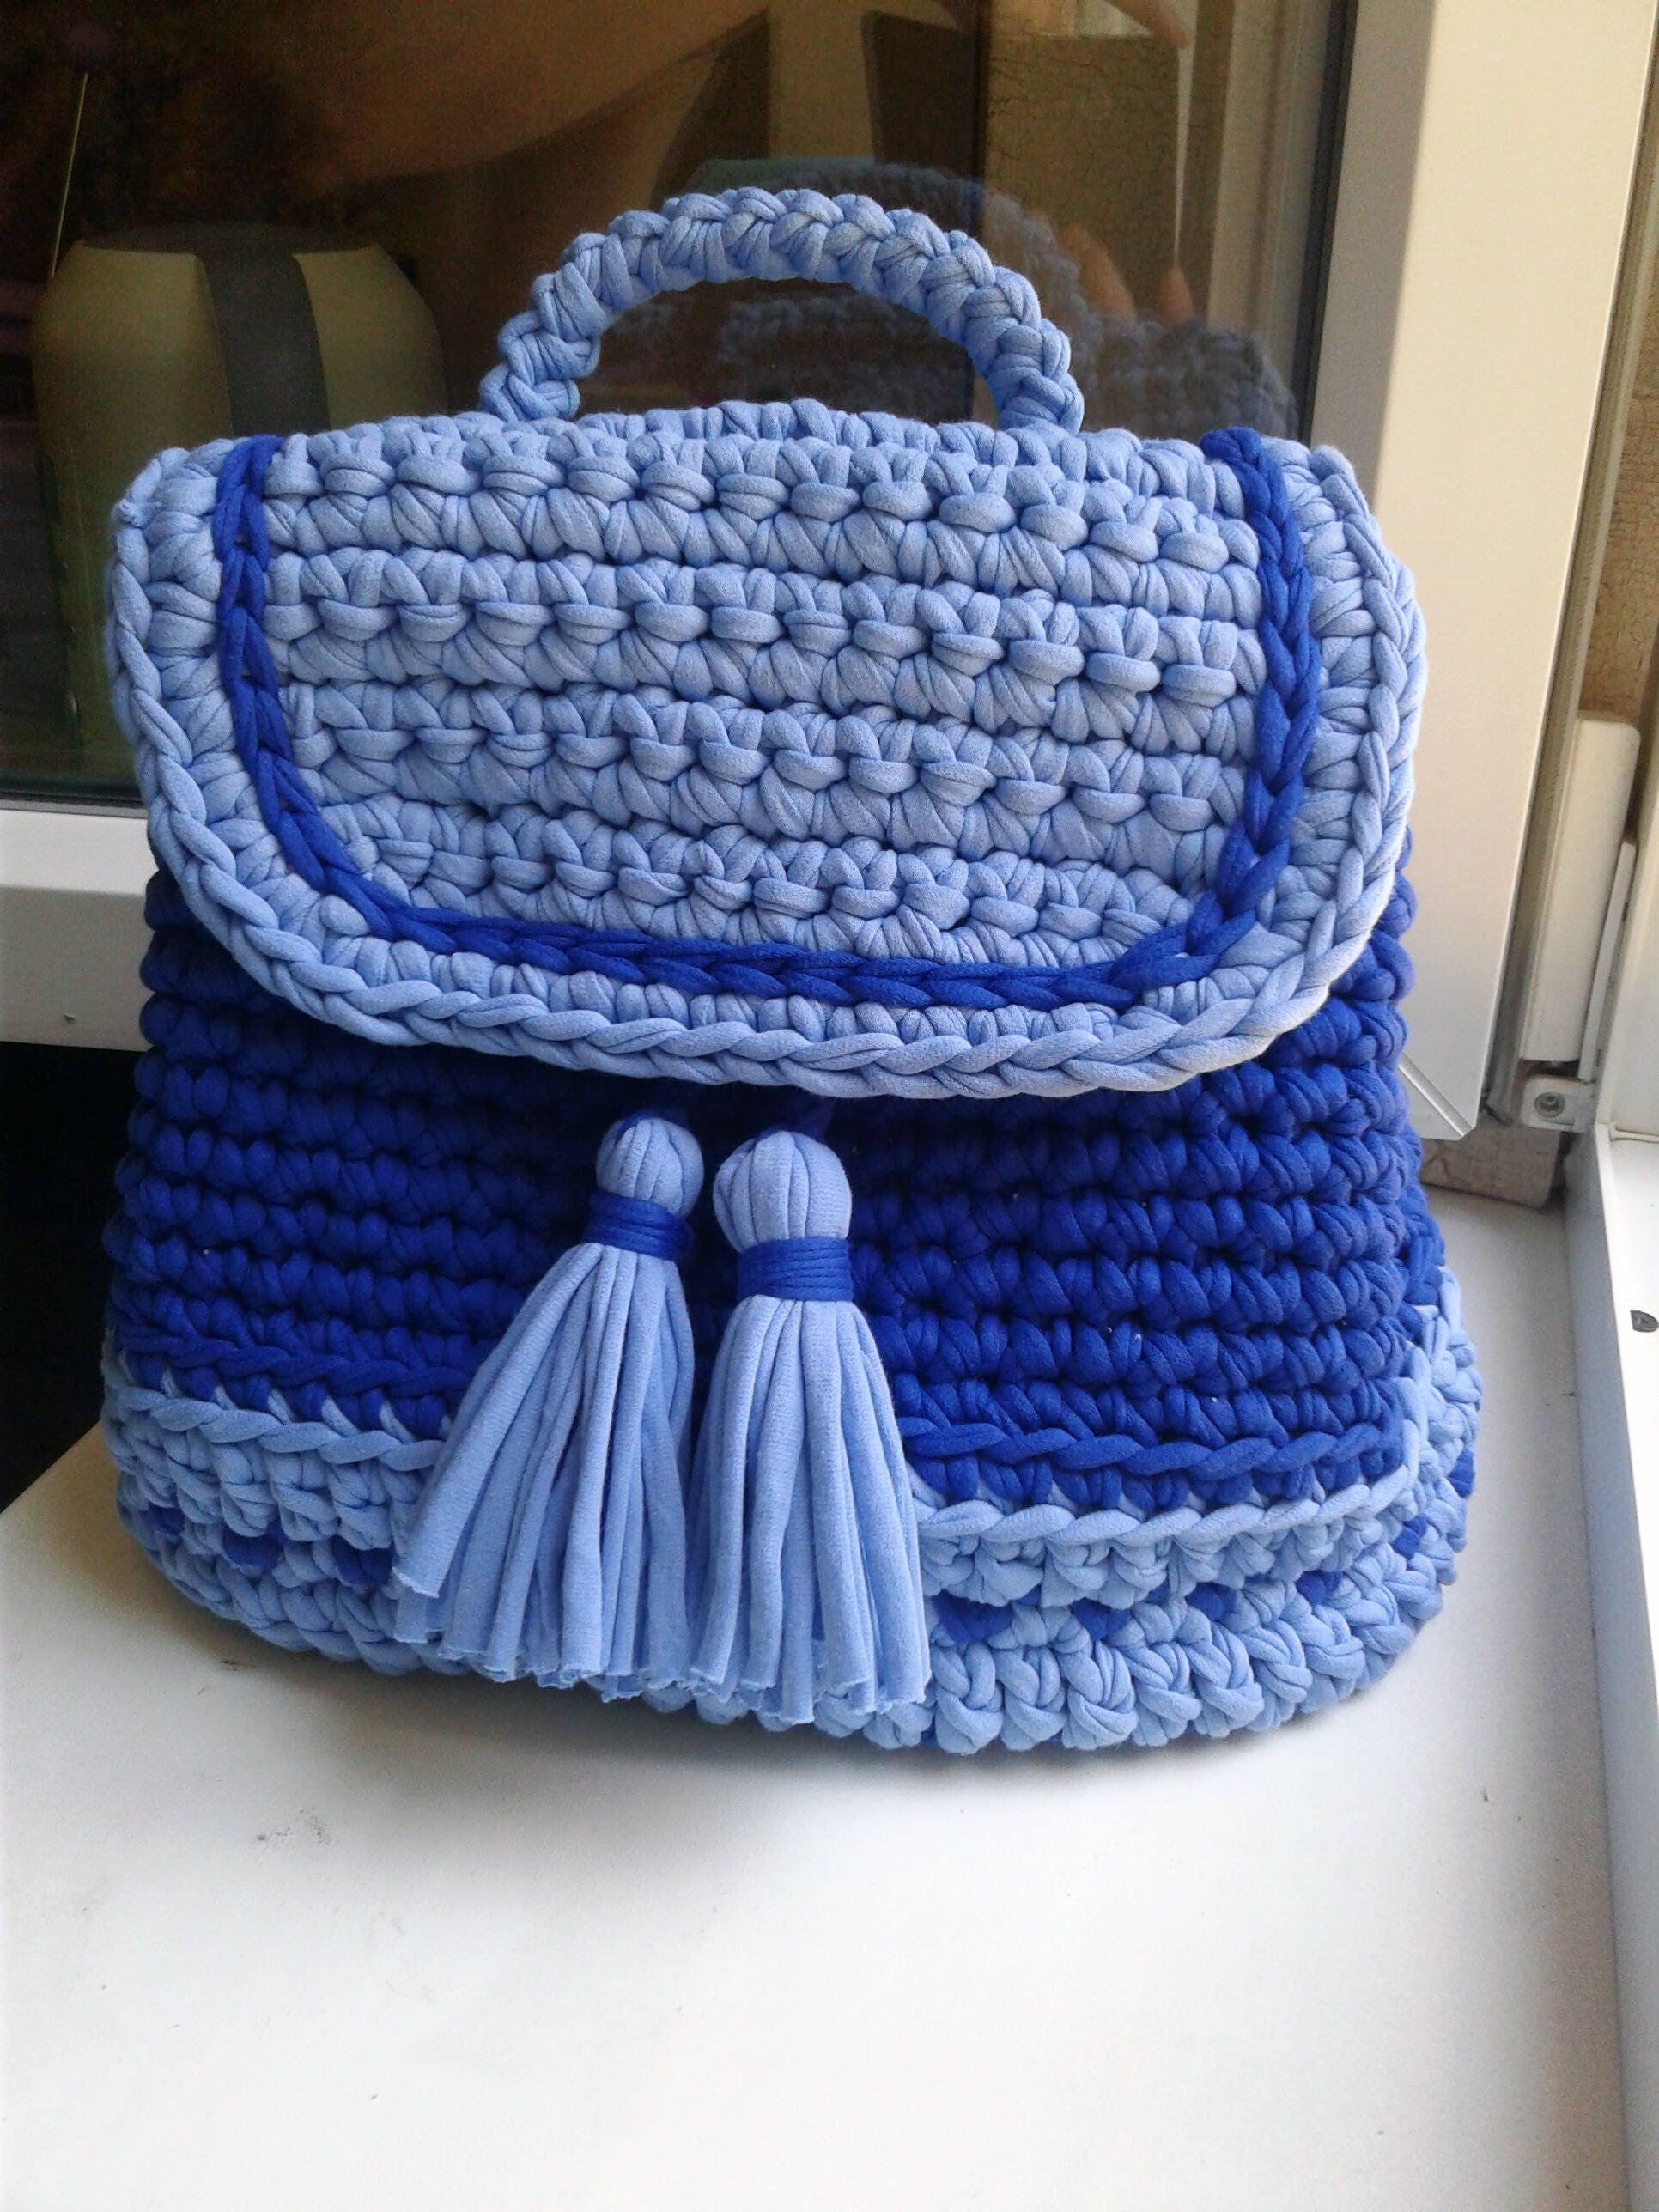 Unusual summer bag